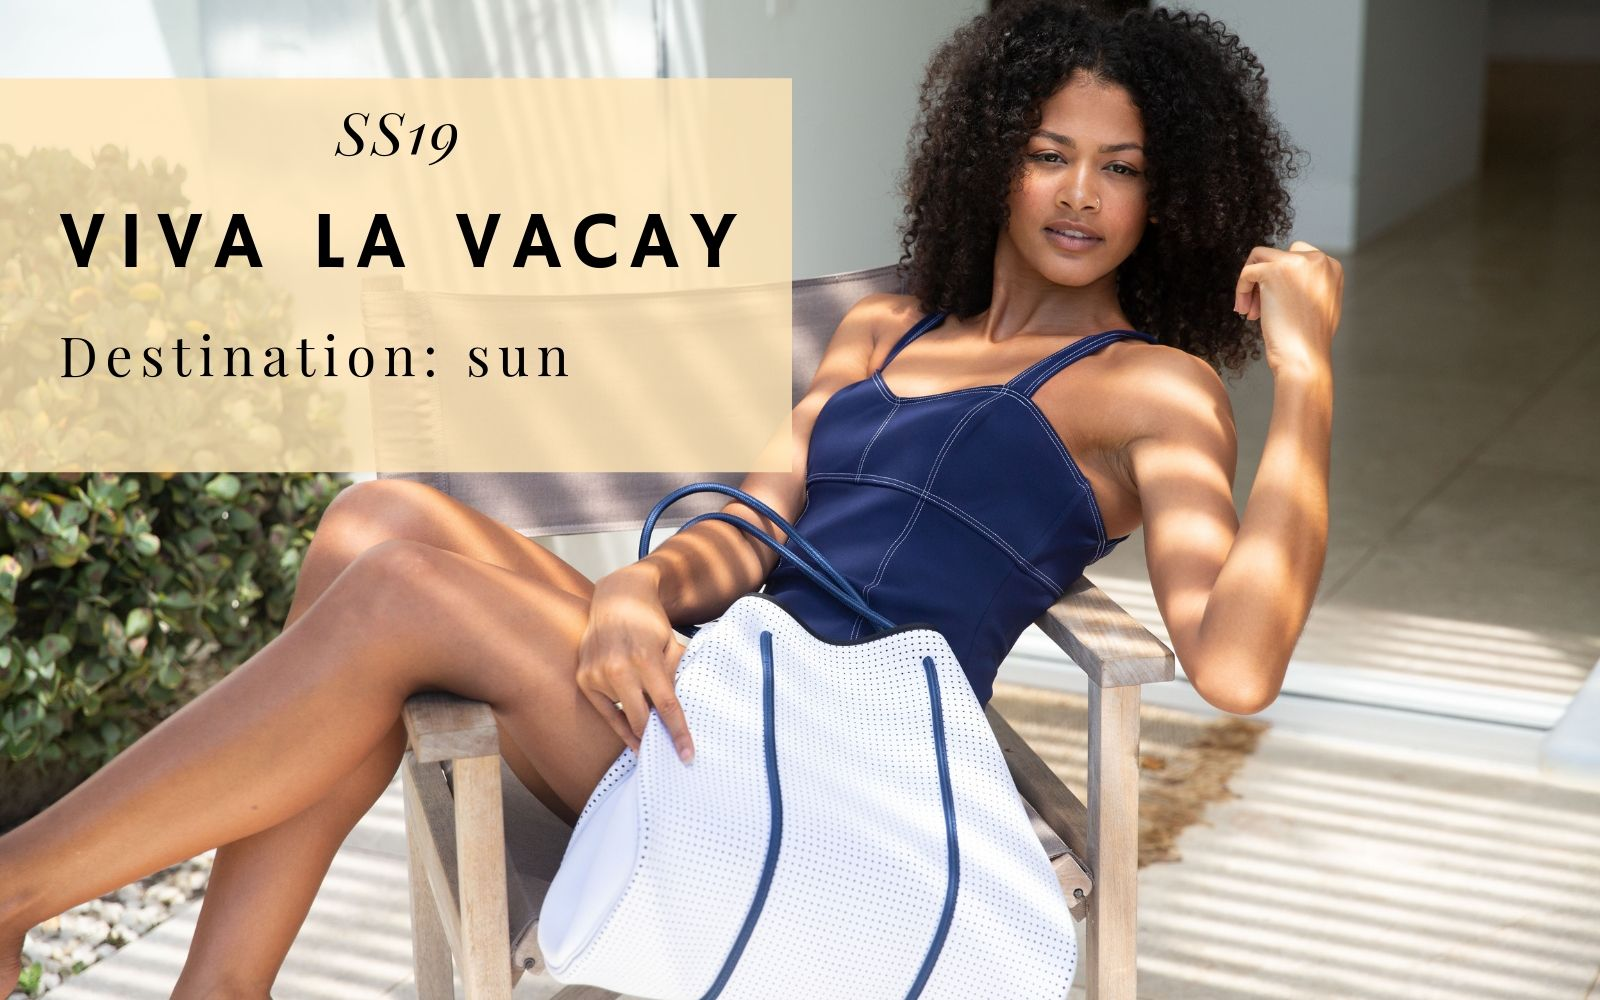 Chuchka SS19 Collection - Viva La Vacay